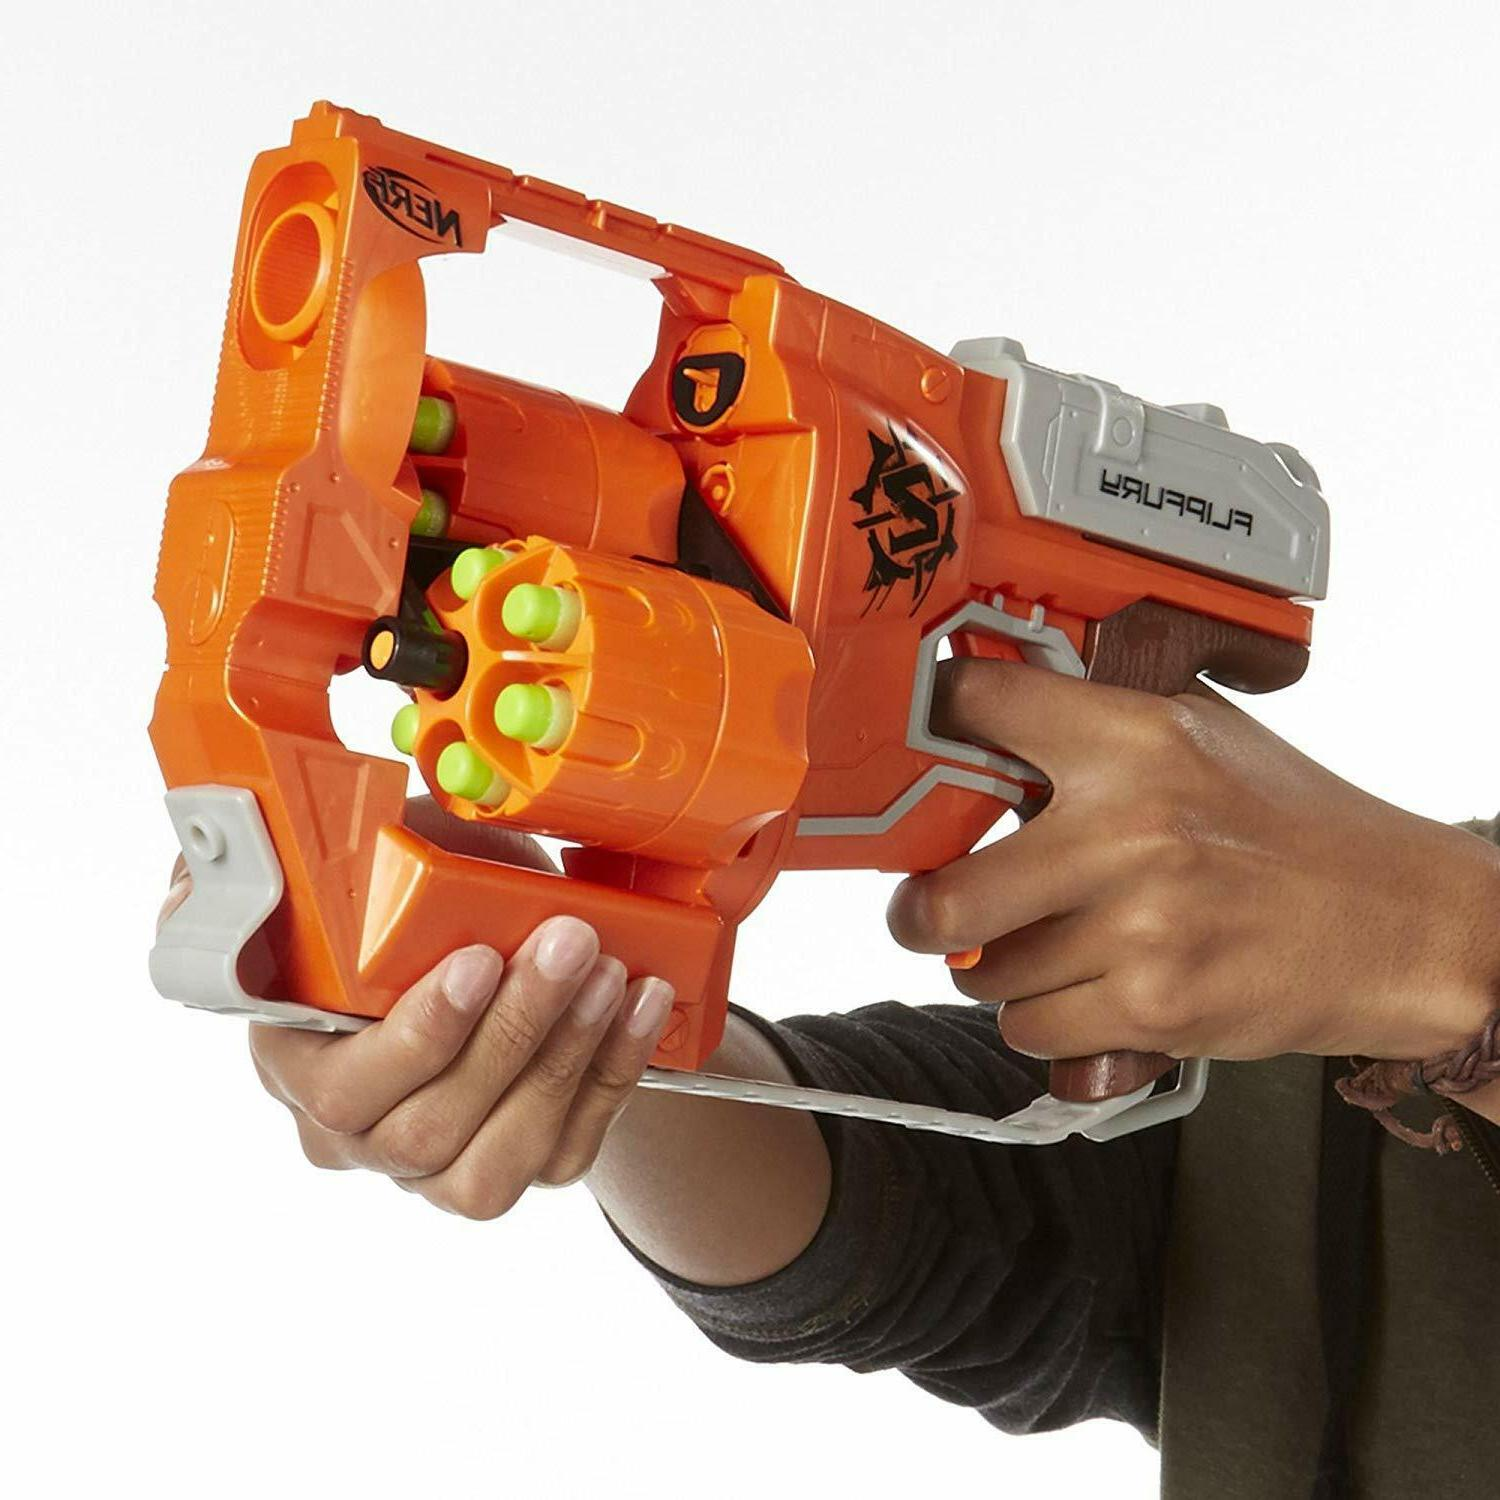 Nerf Strike Fury Weapon with 12 Darts Toys for Boys Gift